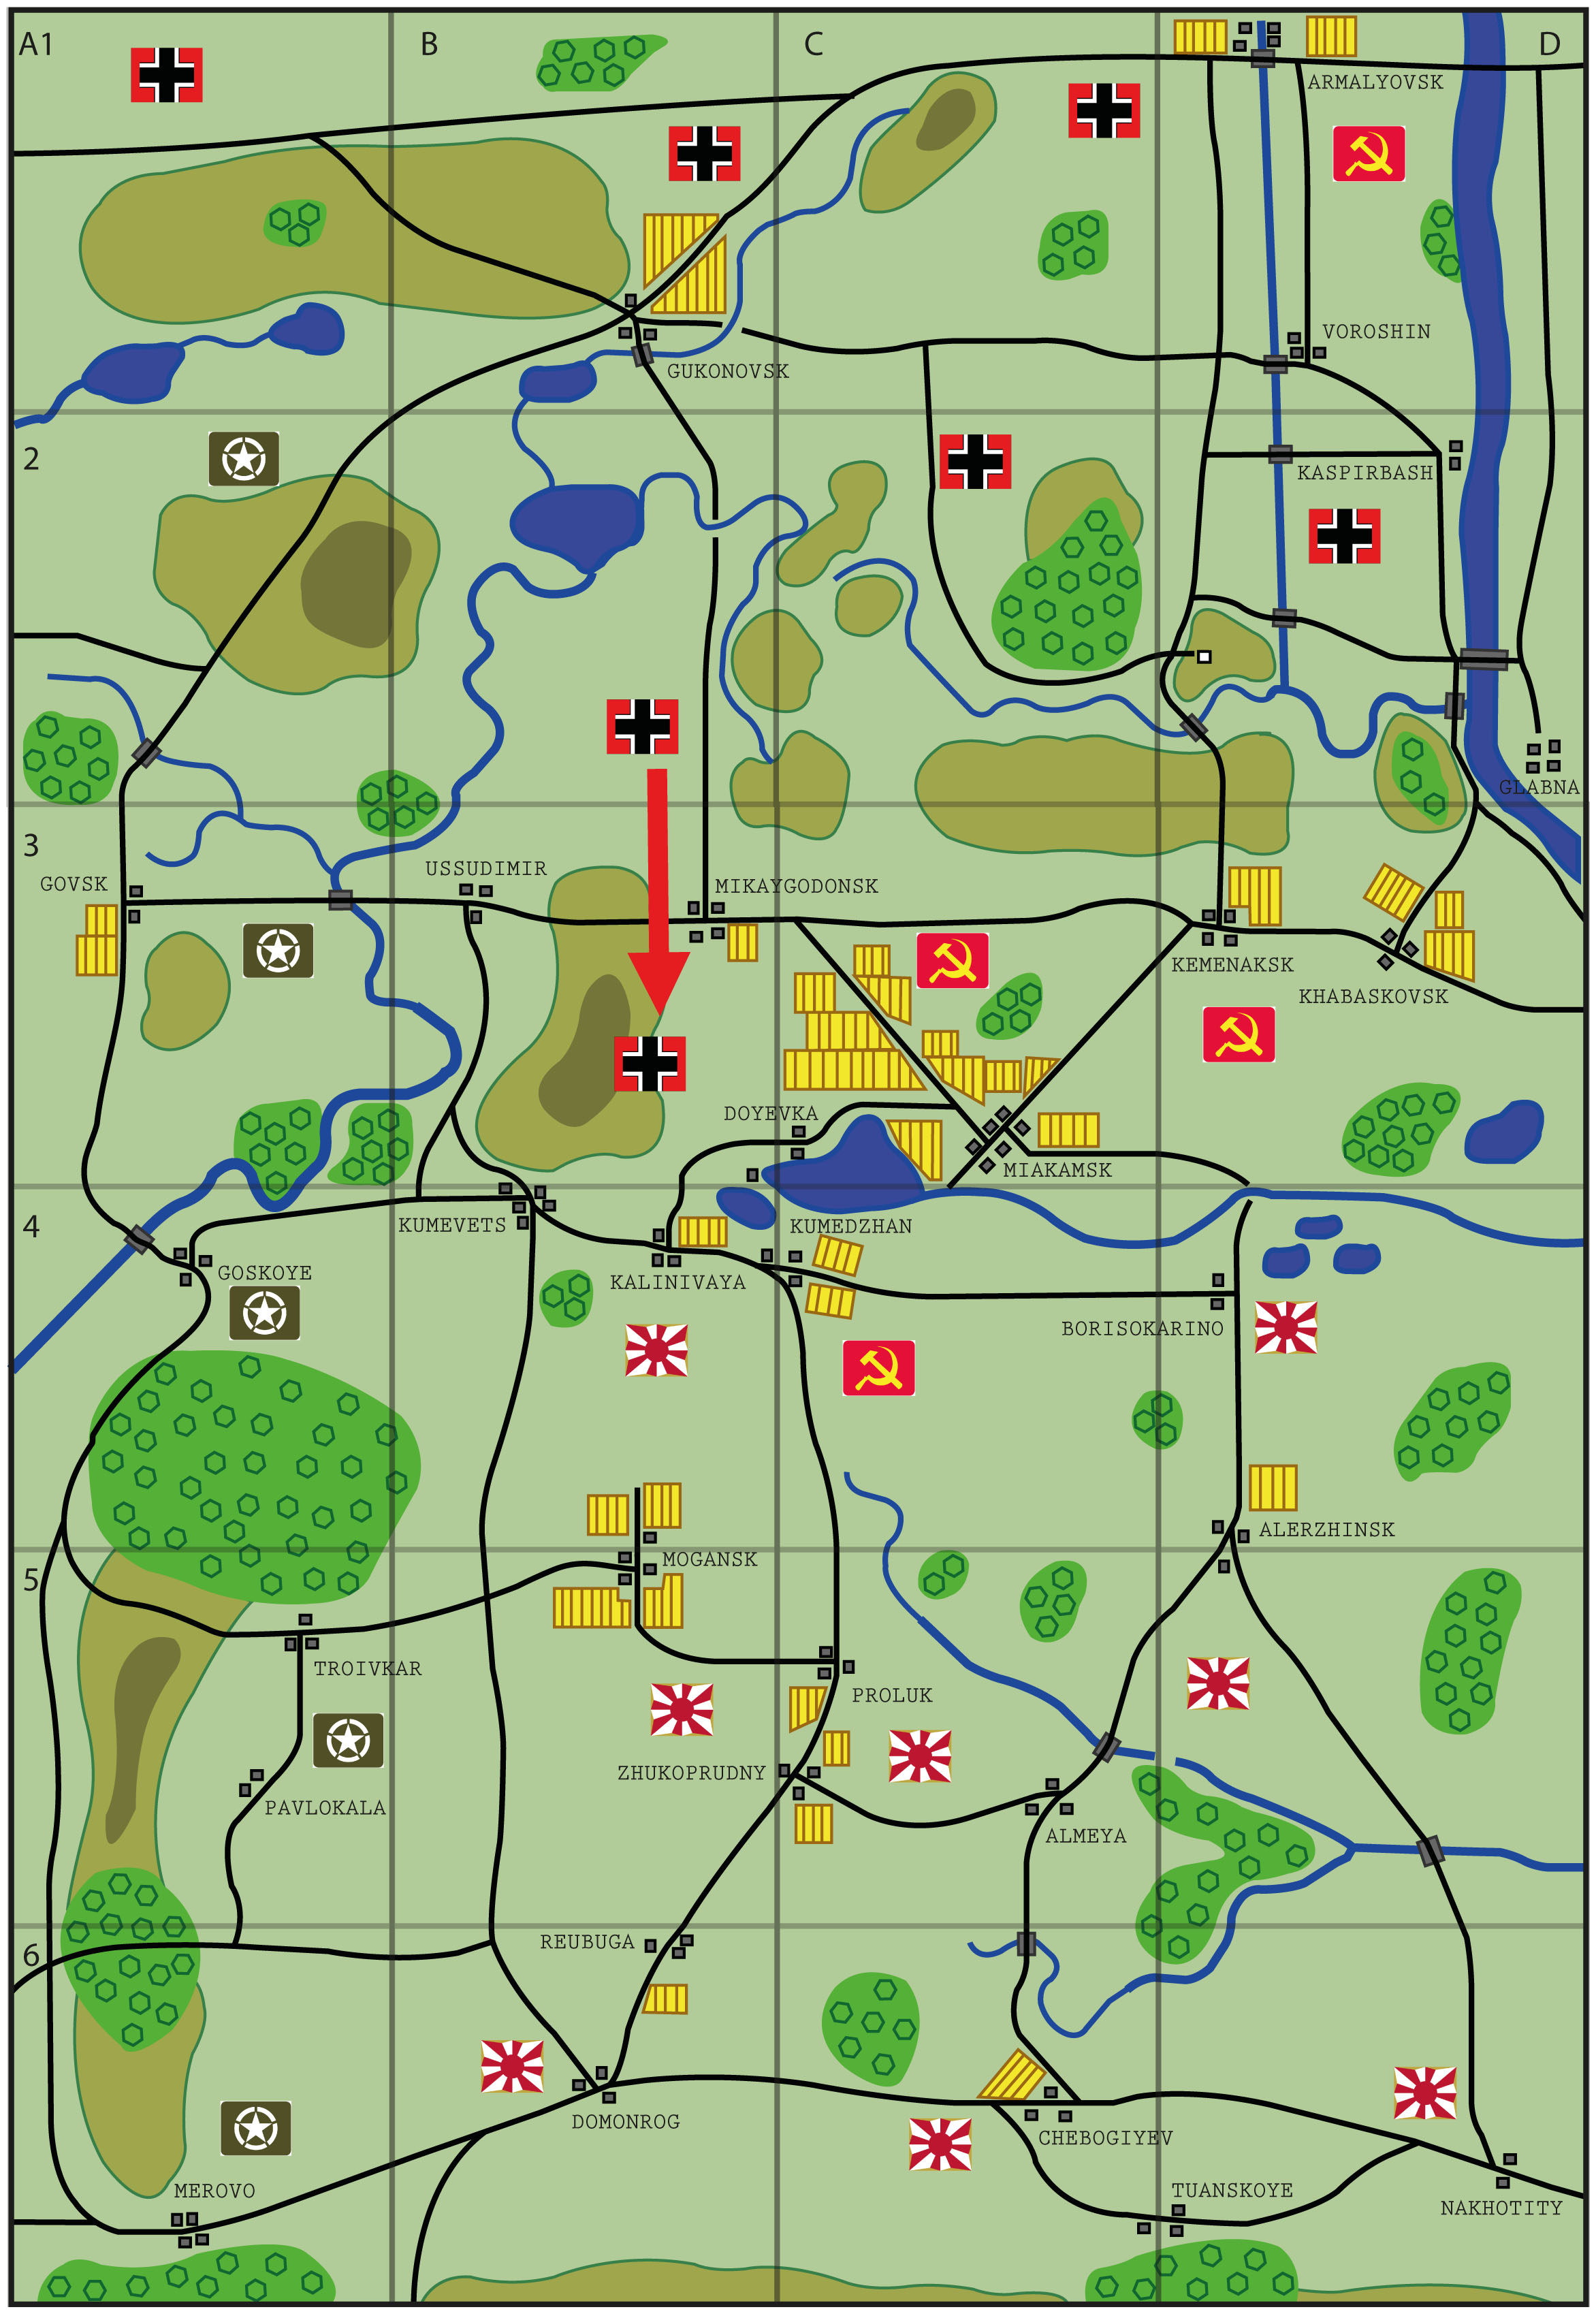 Ostfront campaign - 21st October 1944